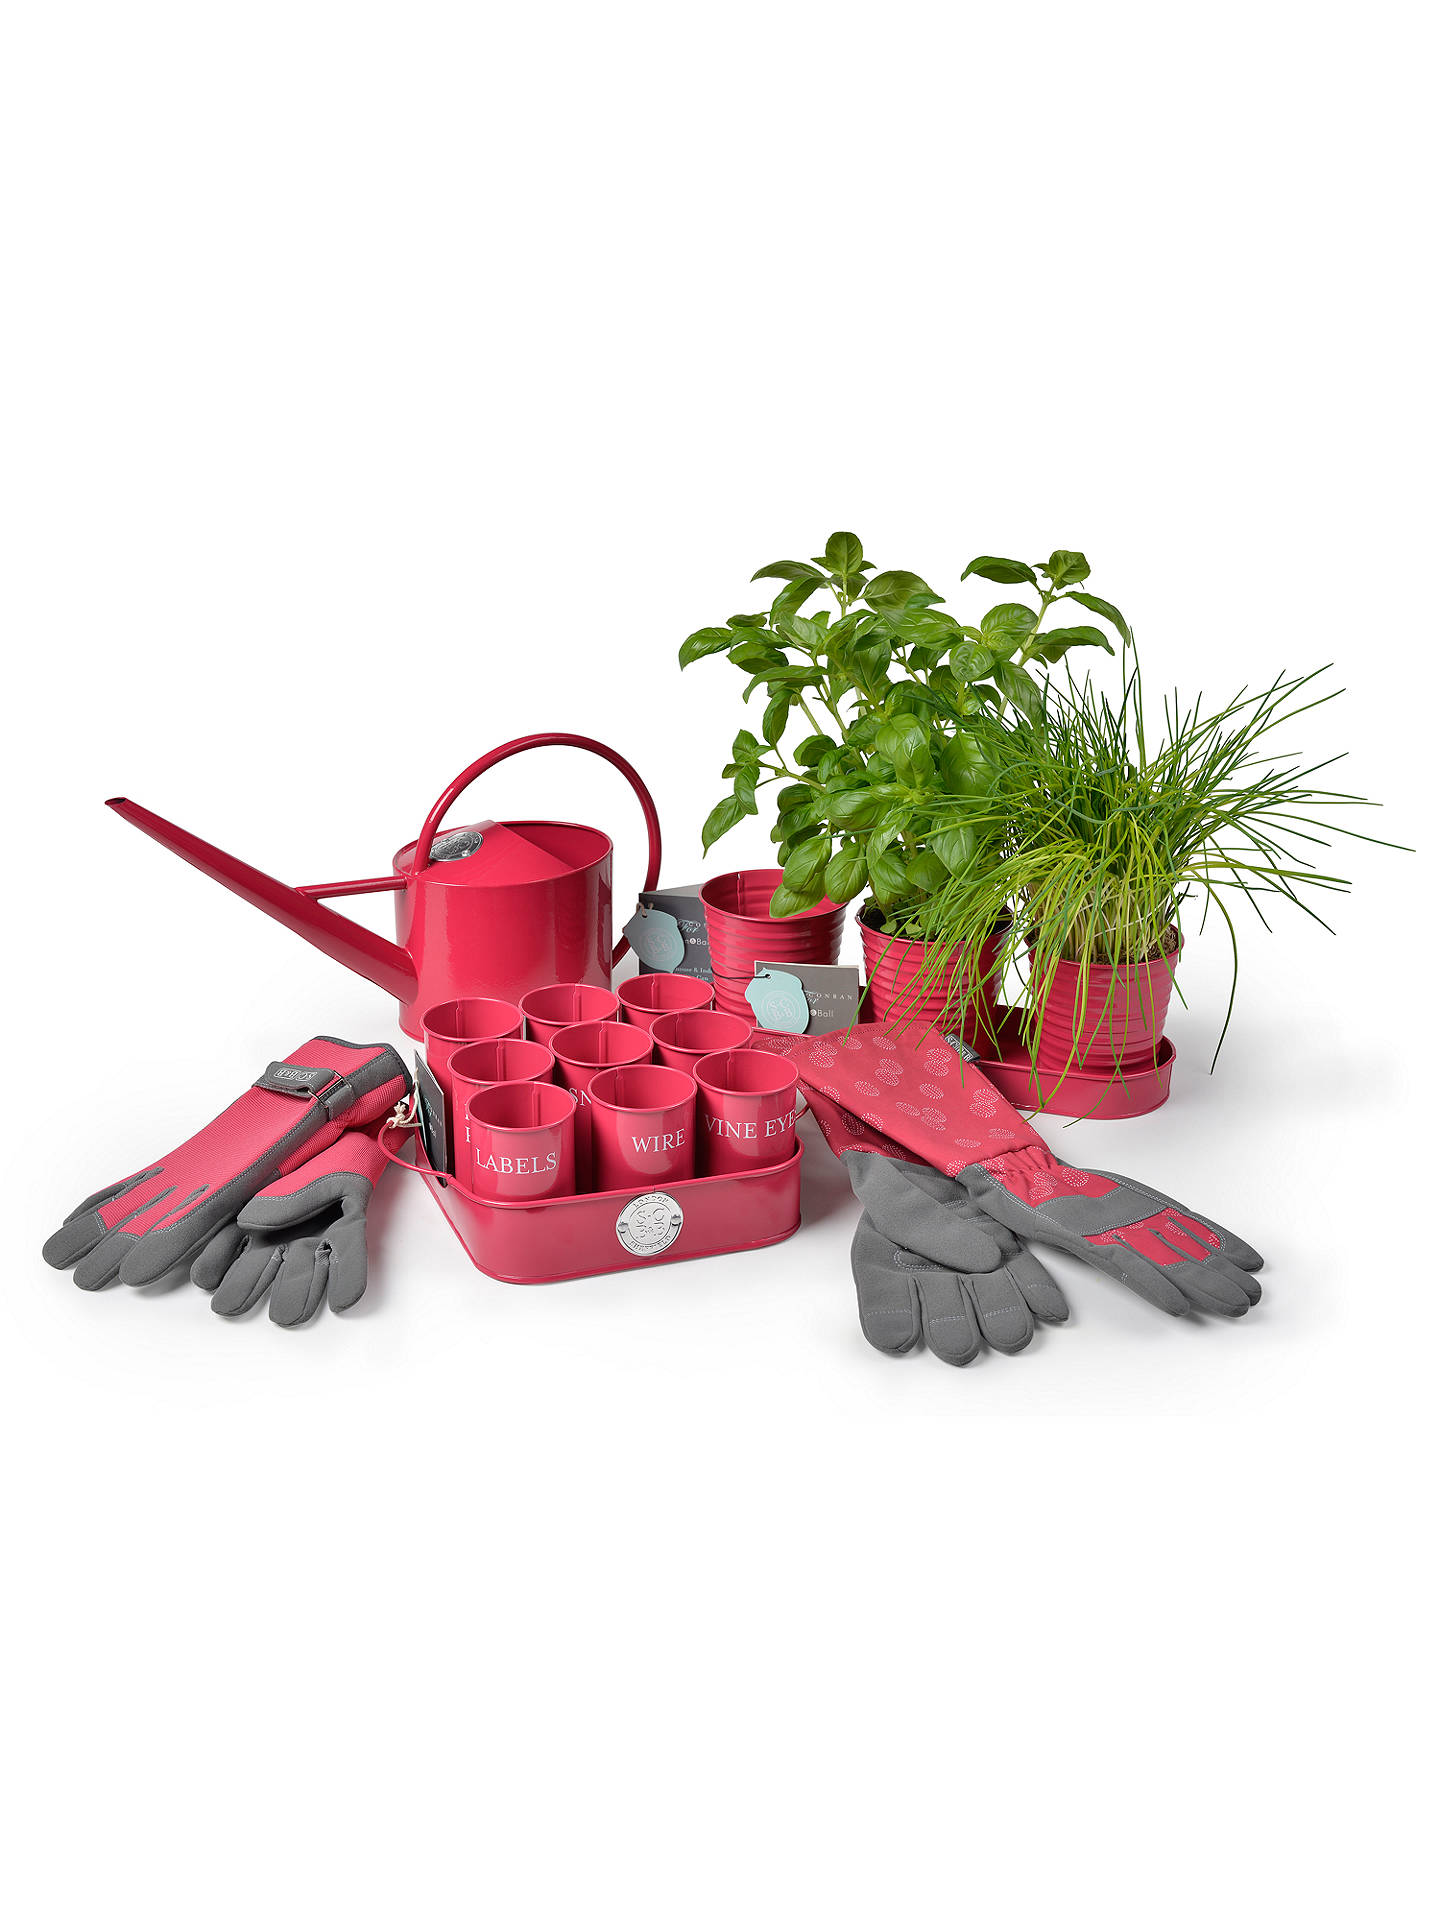 BuySophie Conran for Burgon & Ball Herb Pots, Raspberry Online at johnlewis.com